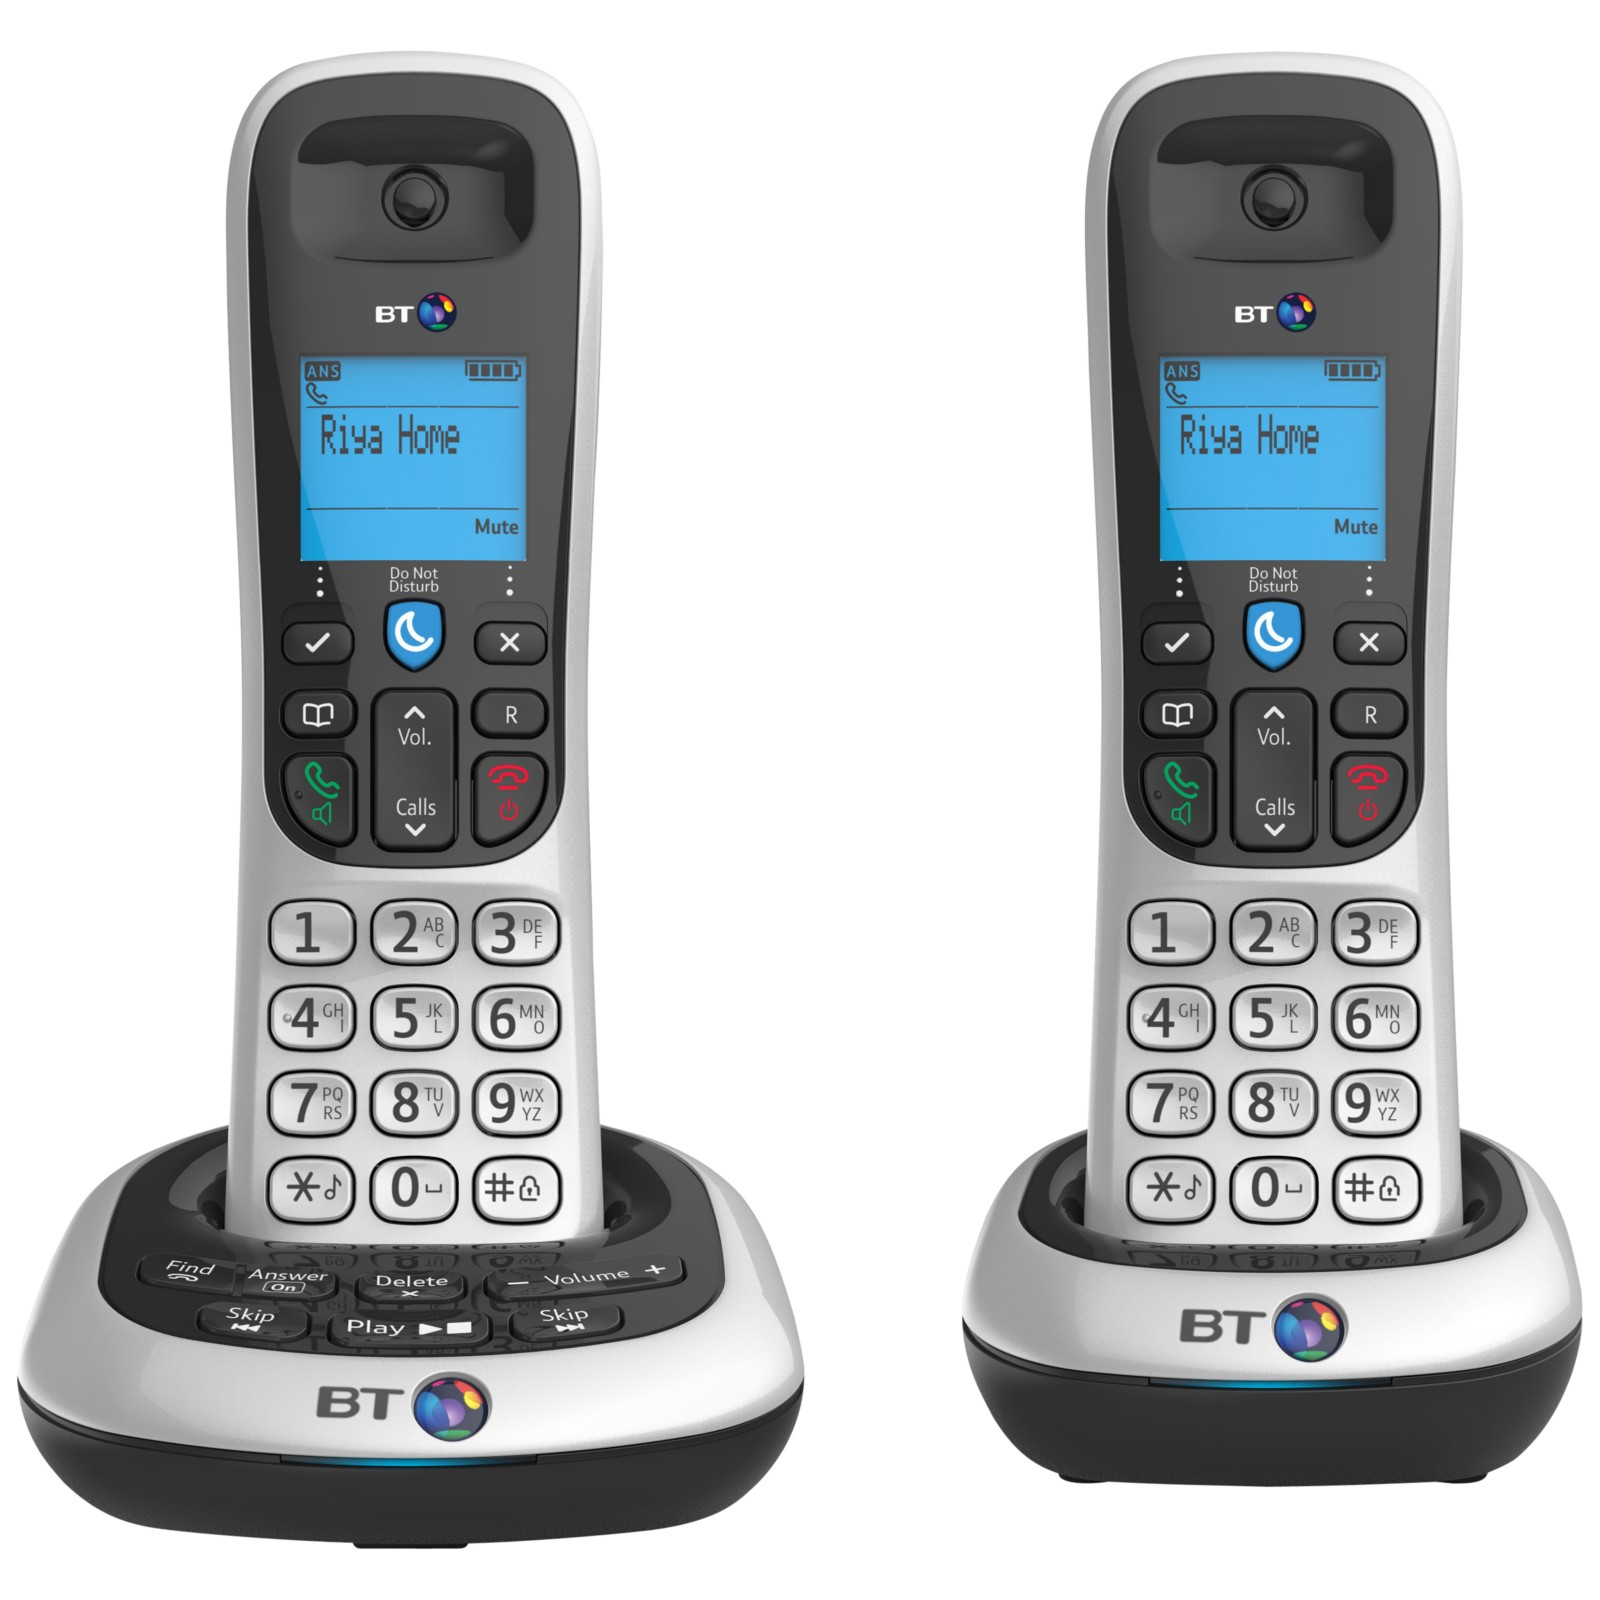 BT 2600 Digital Cordless Phone with Answering Machine